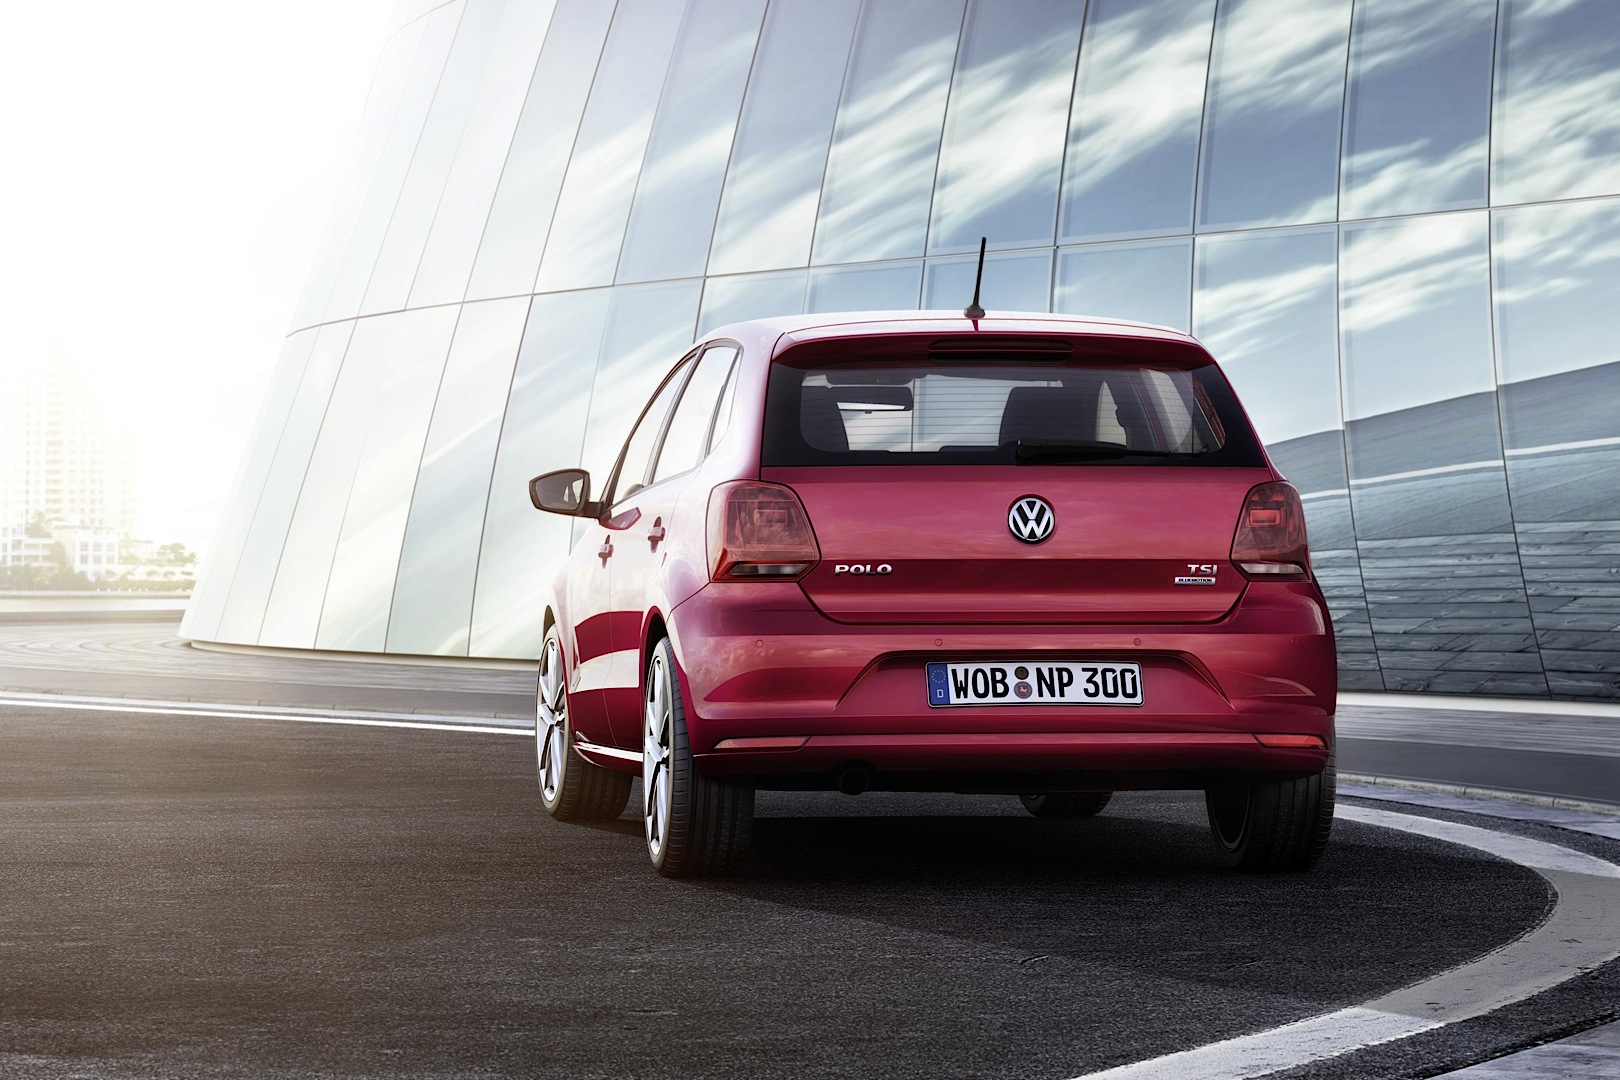 2014 Volkswagen Polo Facelift: Exterior Changes - autoevolution